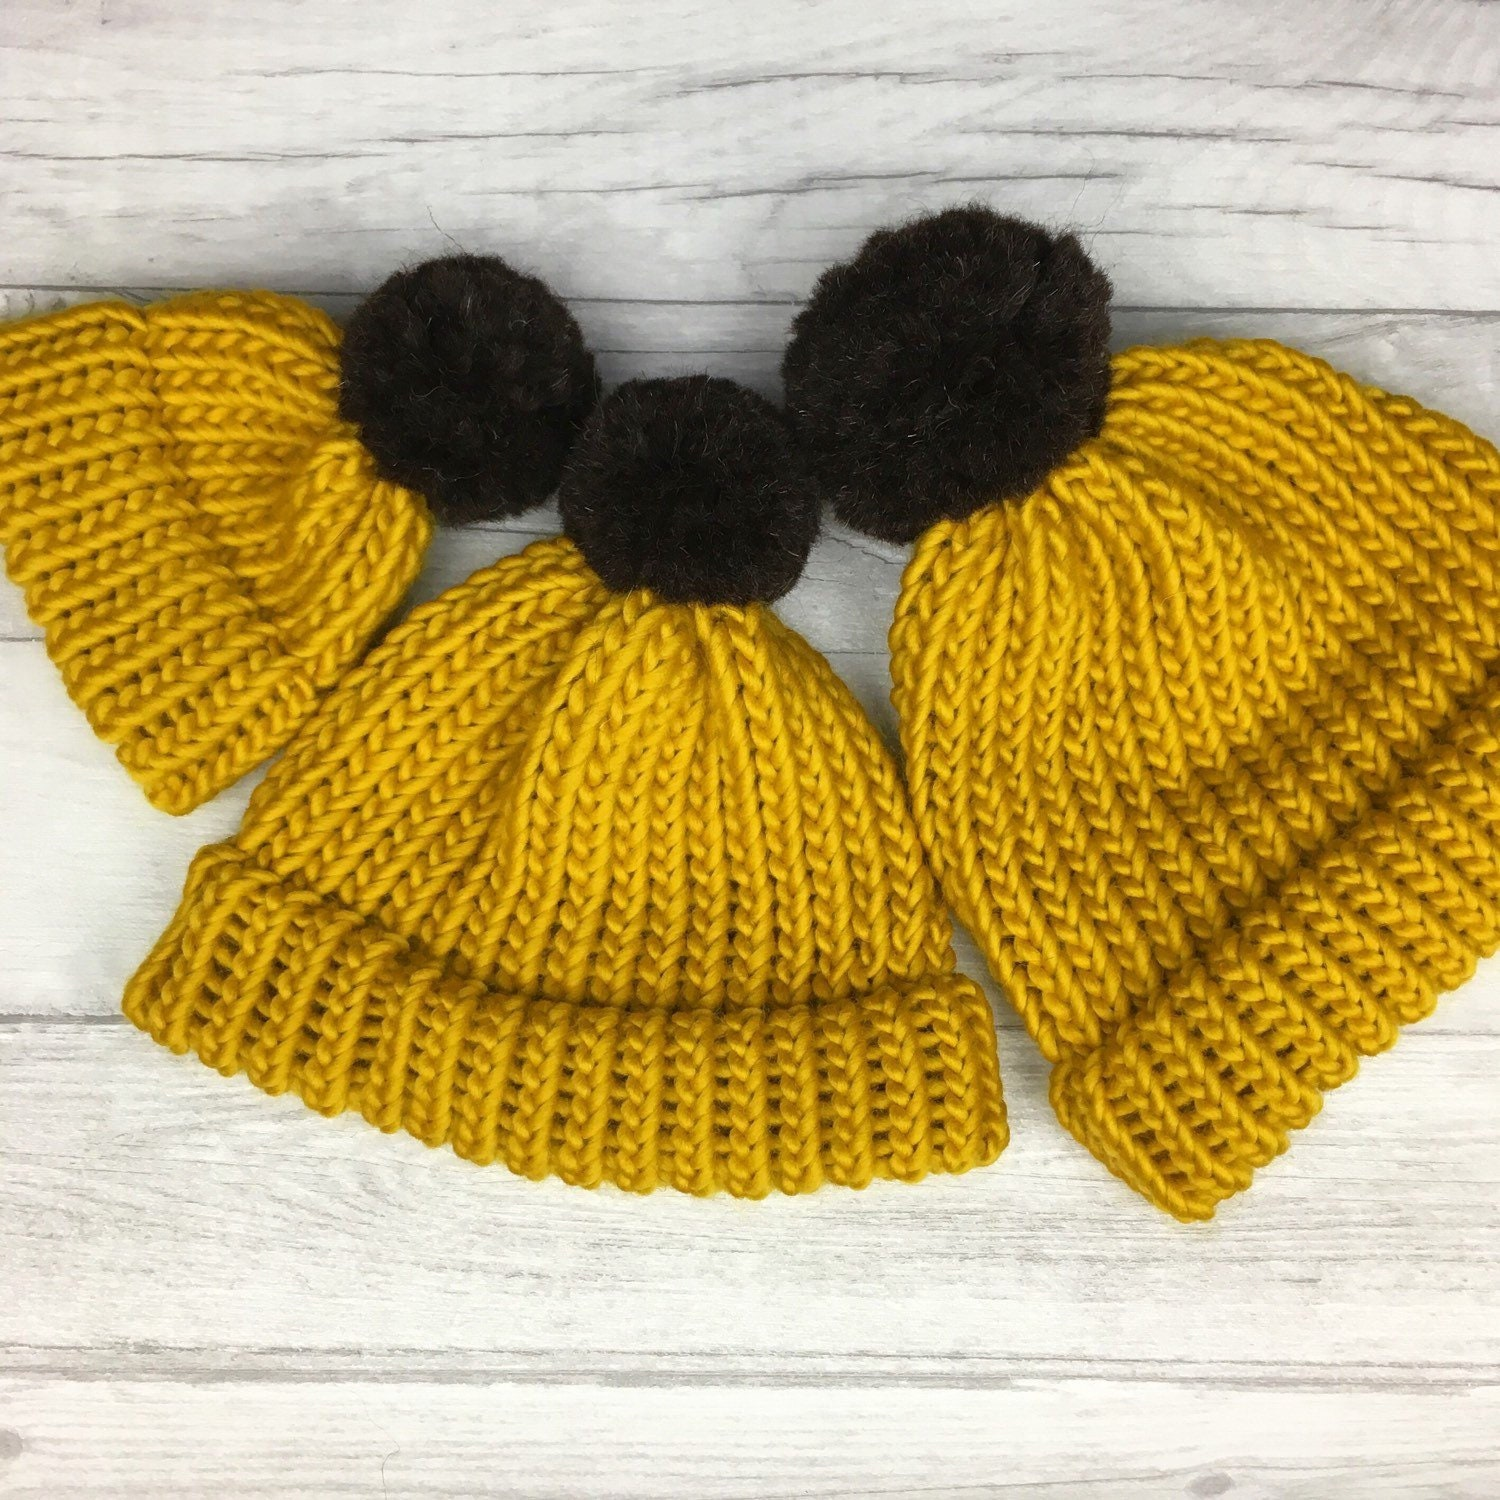 b5d4b9c5 Mustard yellow knitted beanie hat- yellow knit hat - mom baby matching  outfits - parent and child hats - newborn hat - family outfits